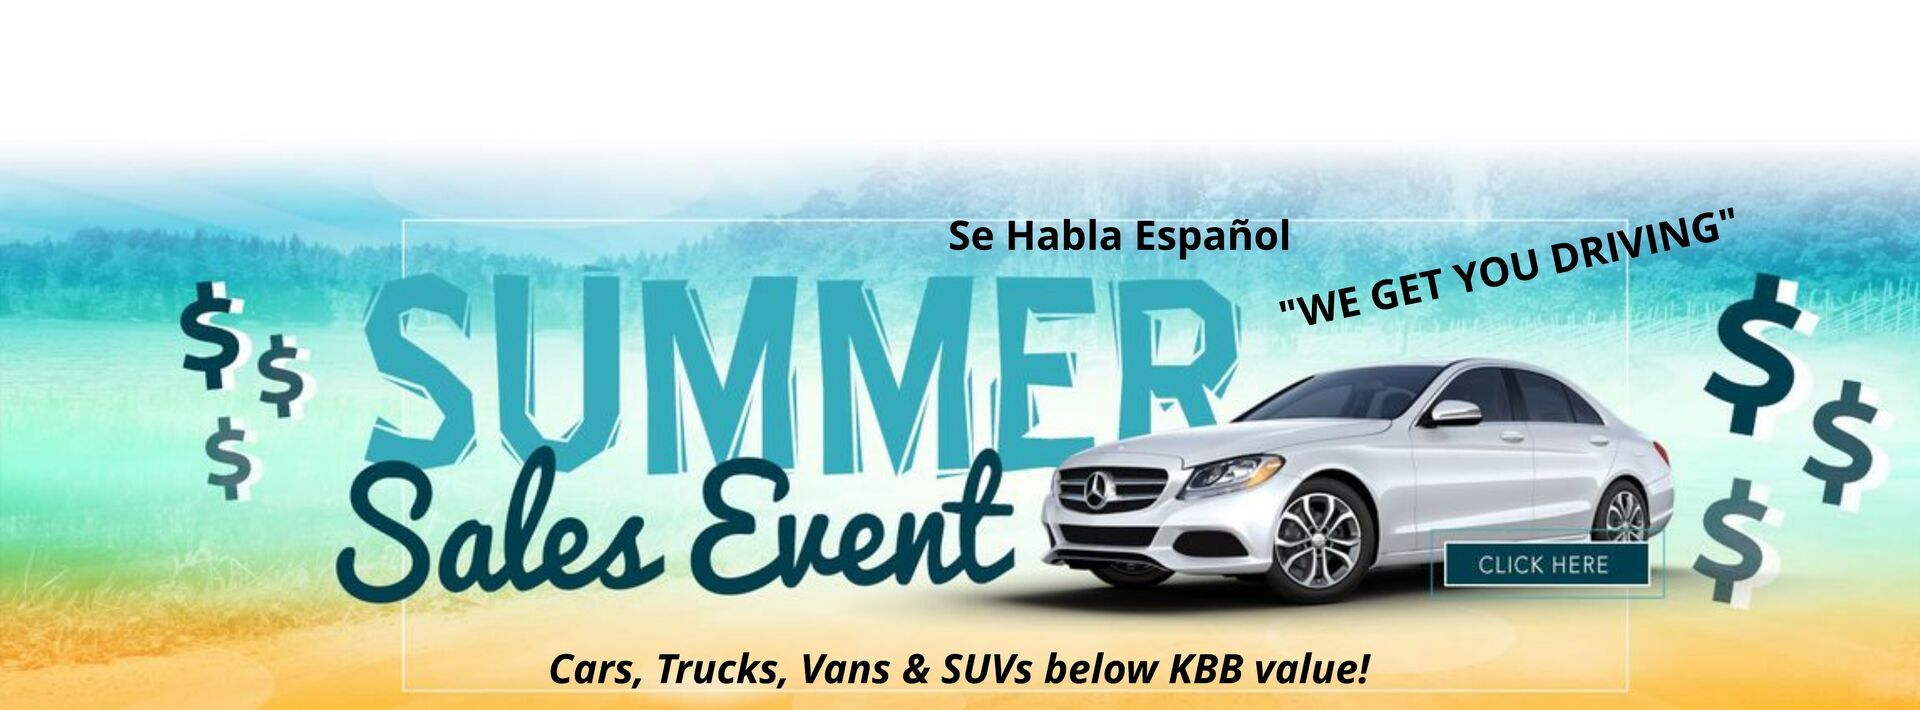 USED CAR DEALER -- SUMMER SALES EVENT